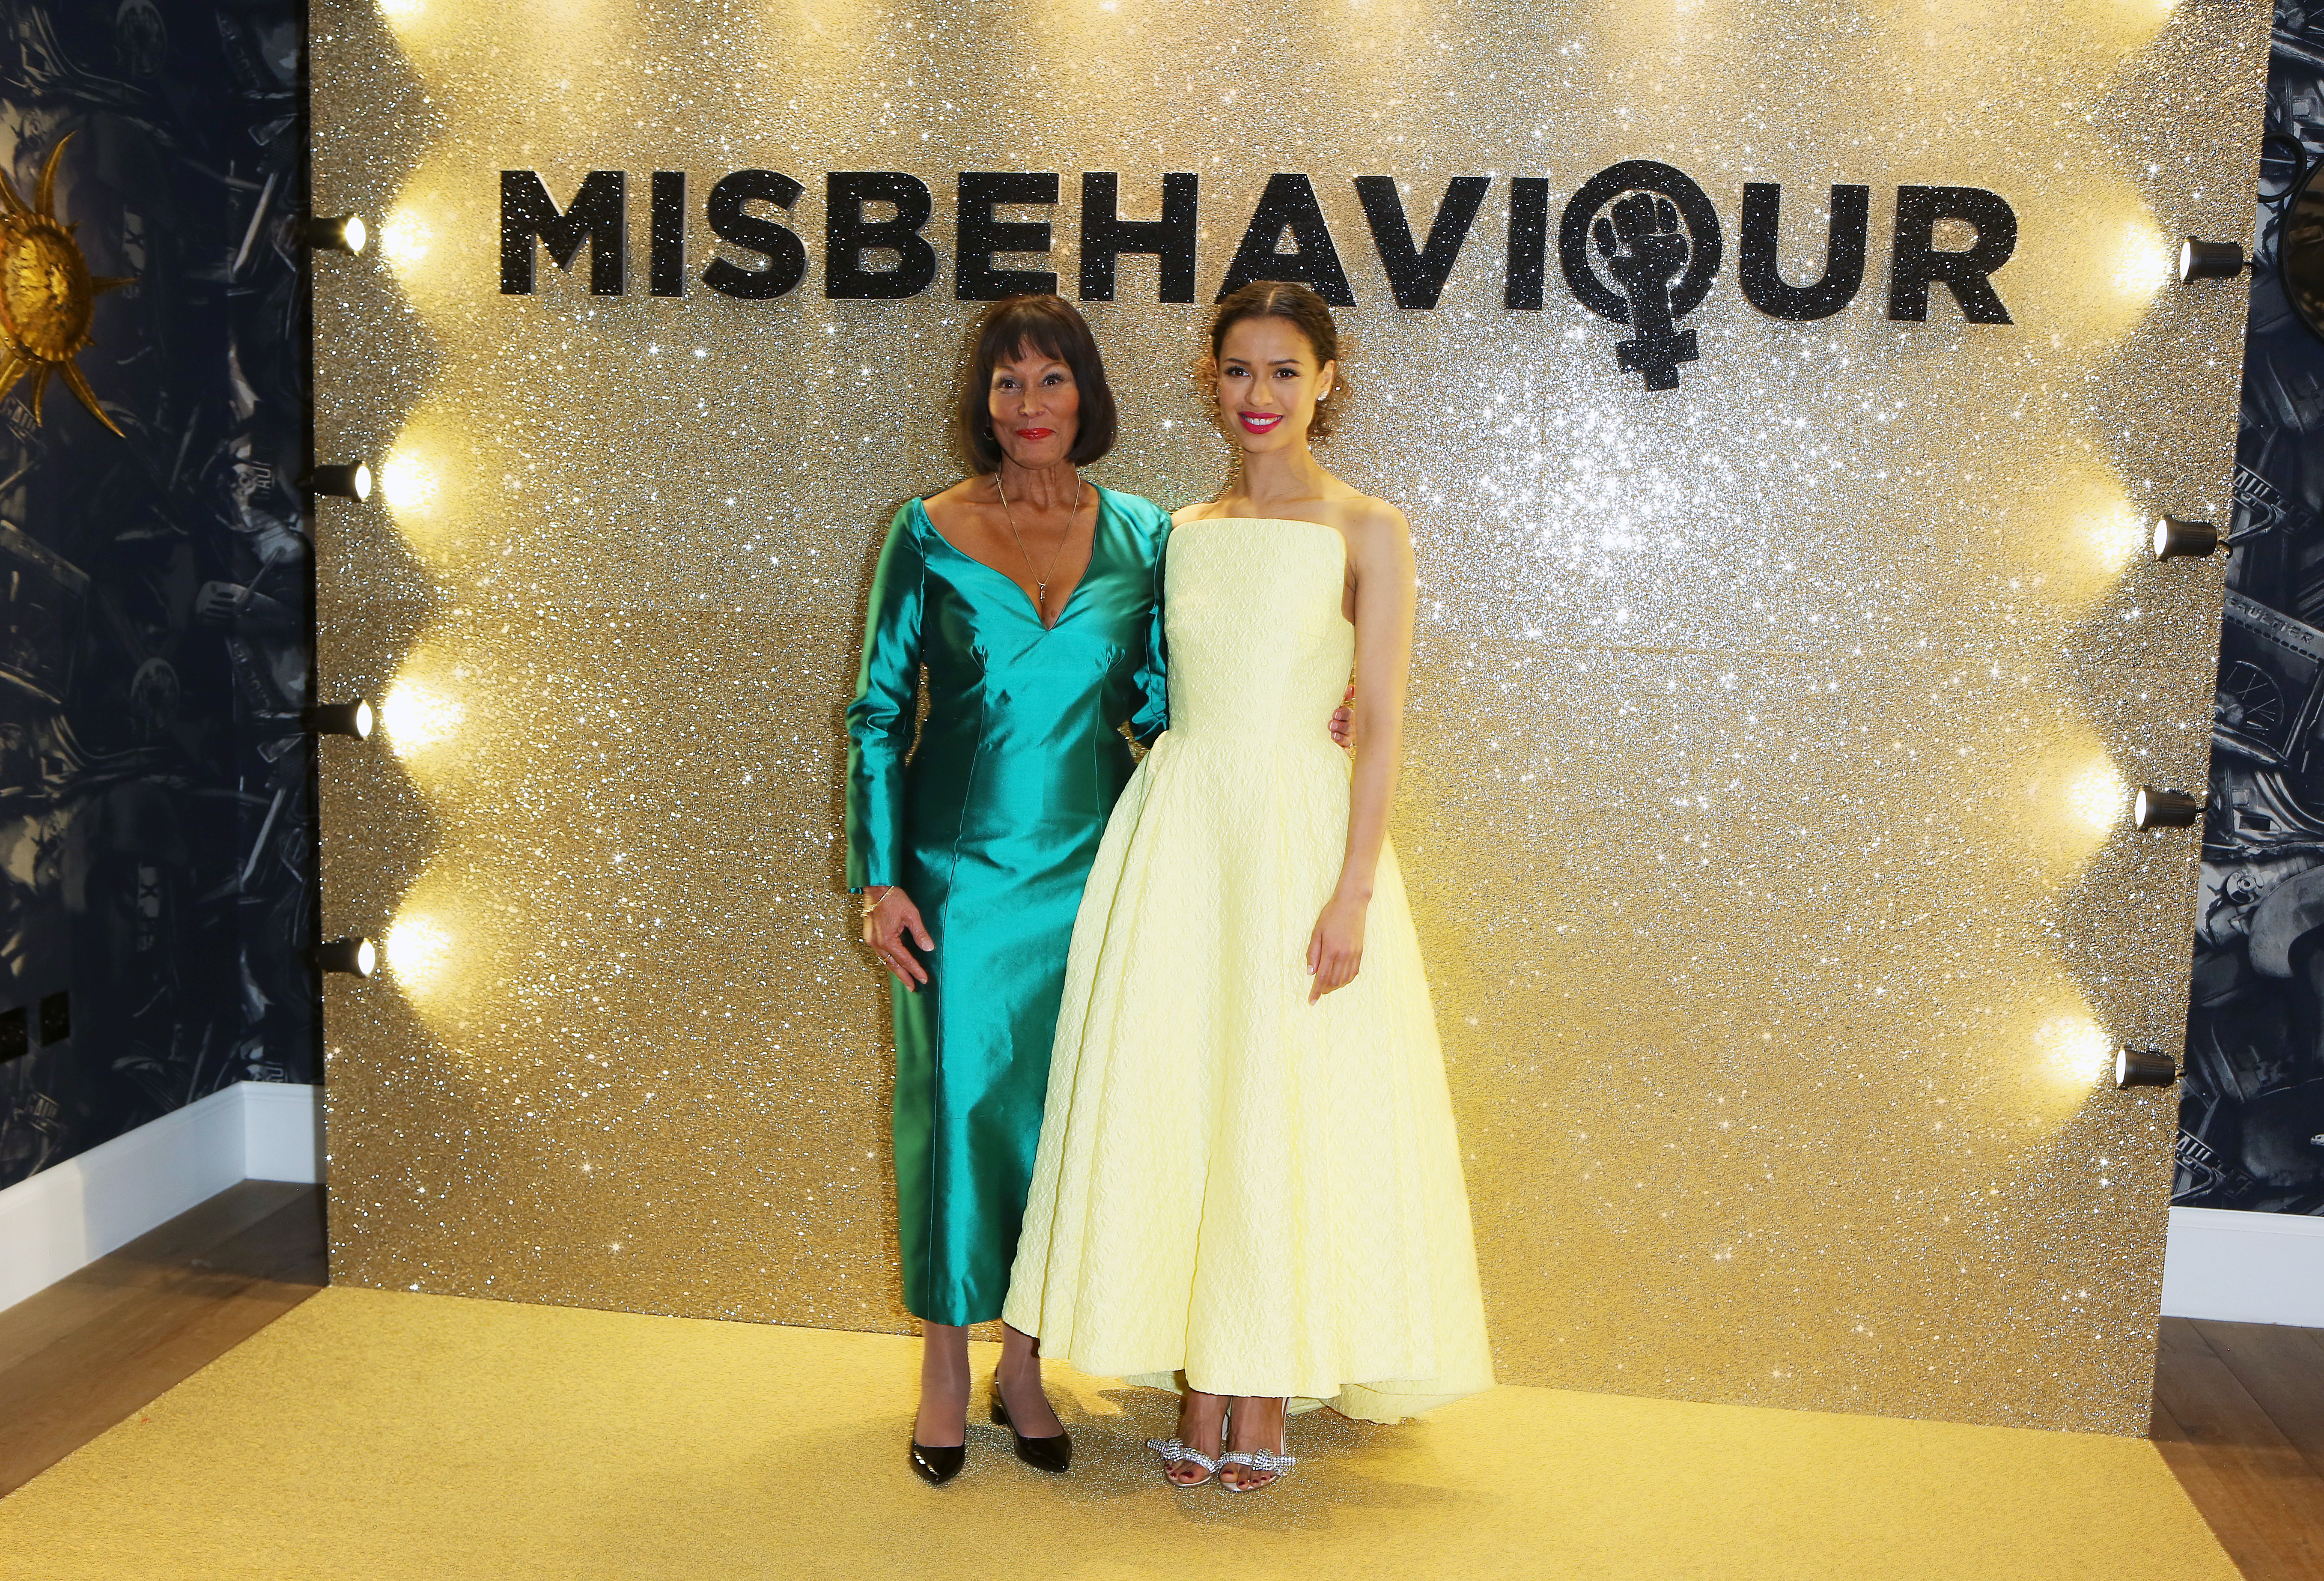 Jennifer Hosten and Gugu Mbatha-Raw attend the World Premiere of  Misbehaviour  on March 09, 2020 in London, England.